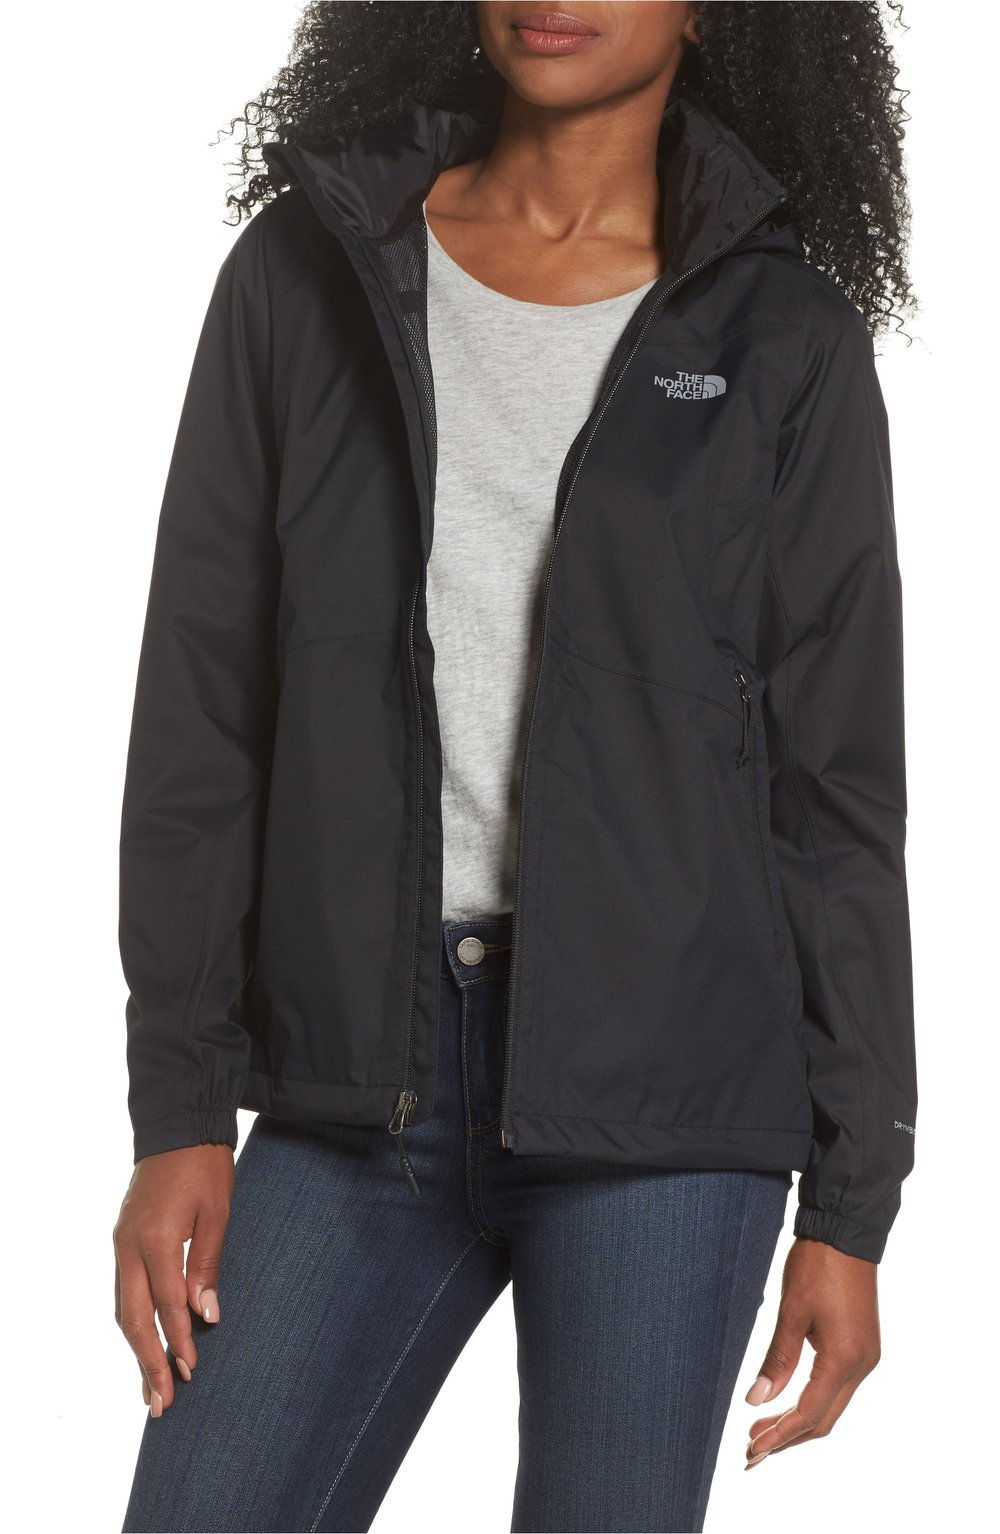 'Resolve Plus' Waterproof Jacket THE NORTH FACE.jpg